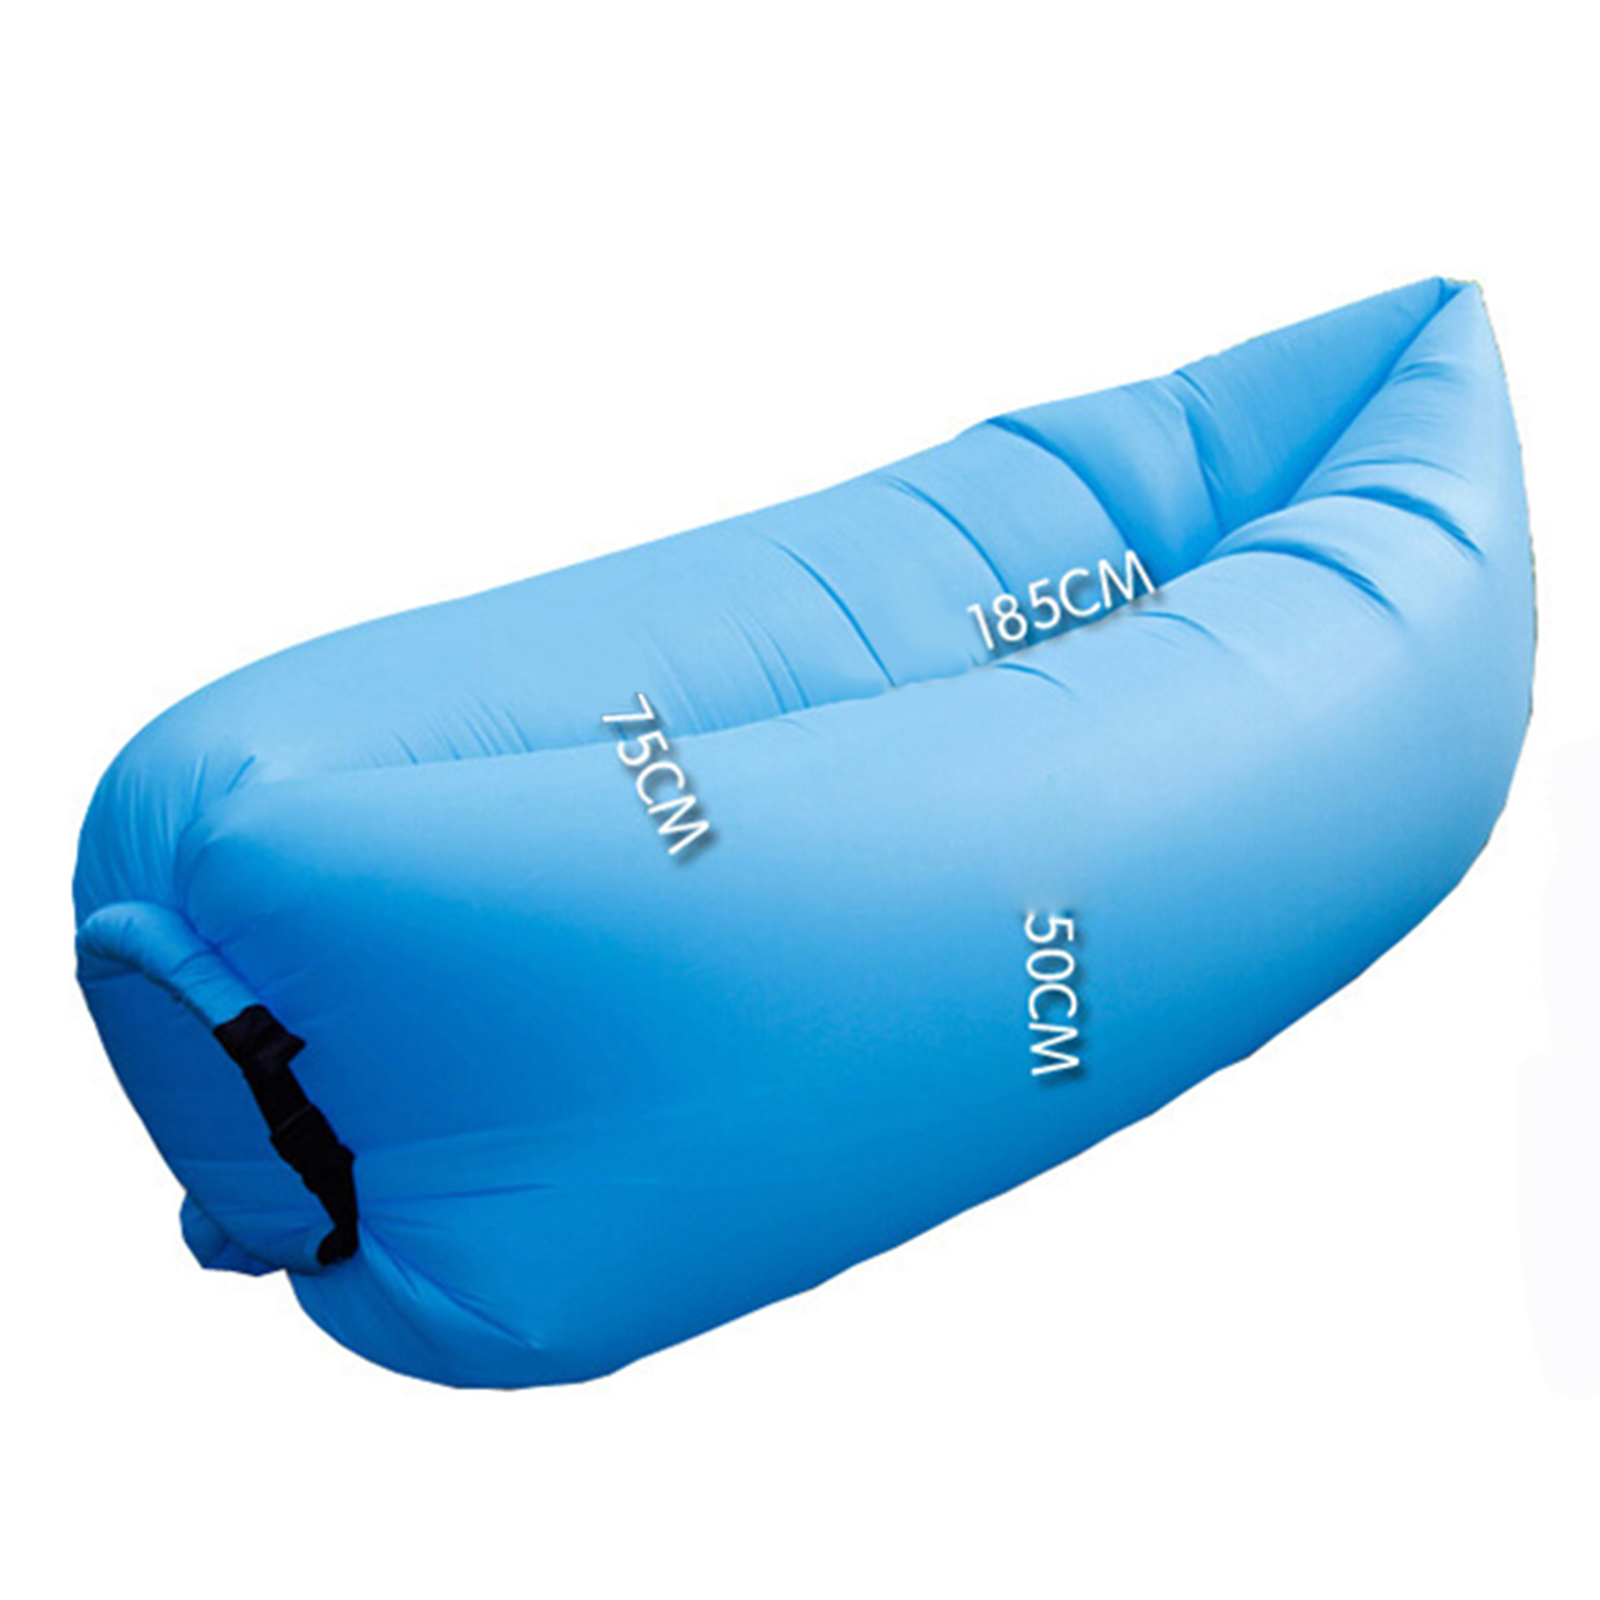 2x Air Sofa Bag Inflatable Lounger Beach Bed Lazy Chair